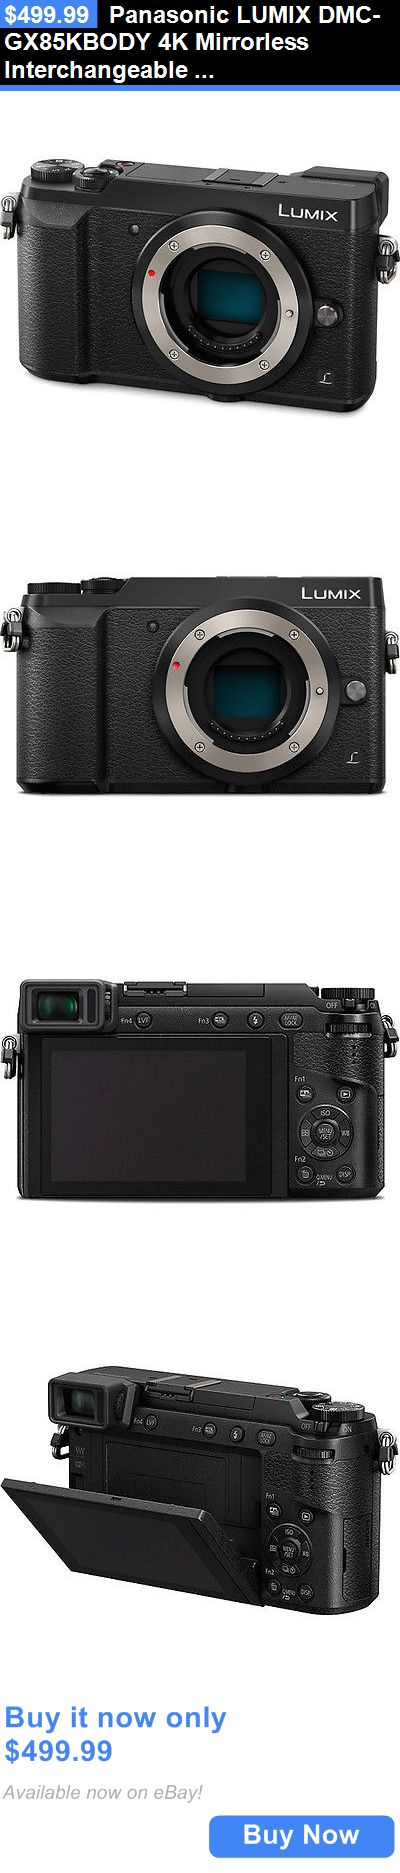 photo and video: Panasonic Lumix Dmc-Gx85kbody 4K Mirrorless Interchangeable Lens Camera (Black) BUY IT NOW ONLY: $499.99